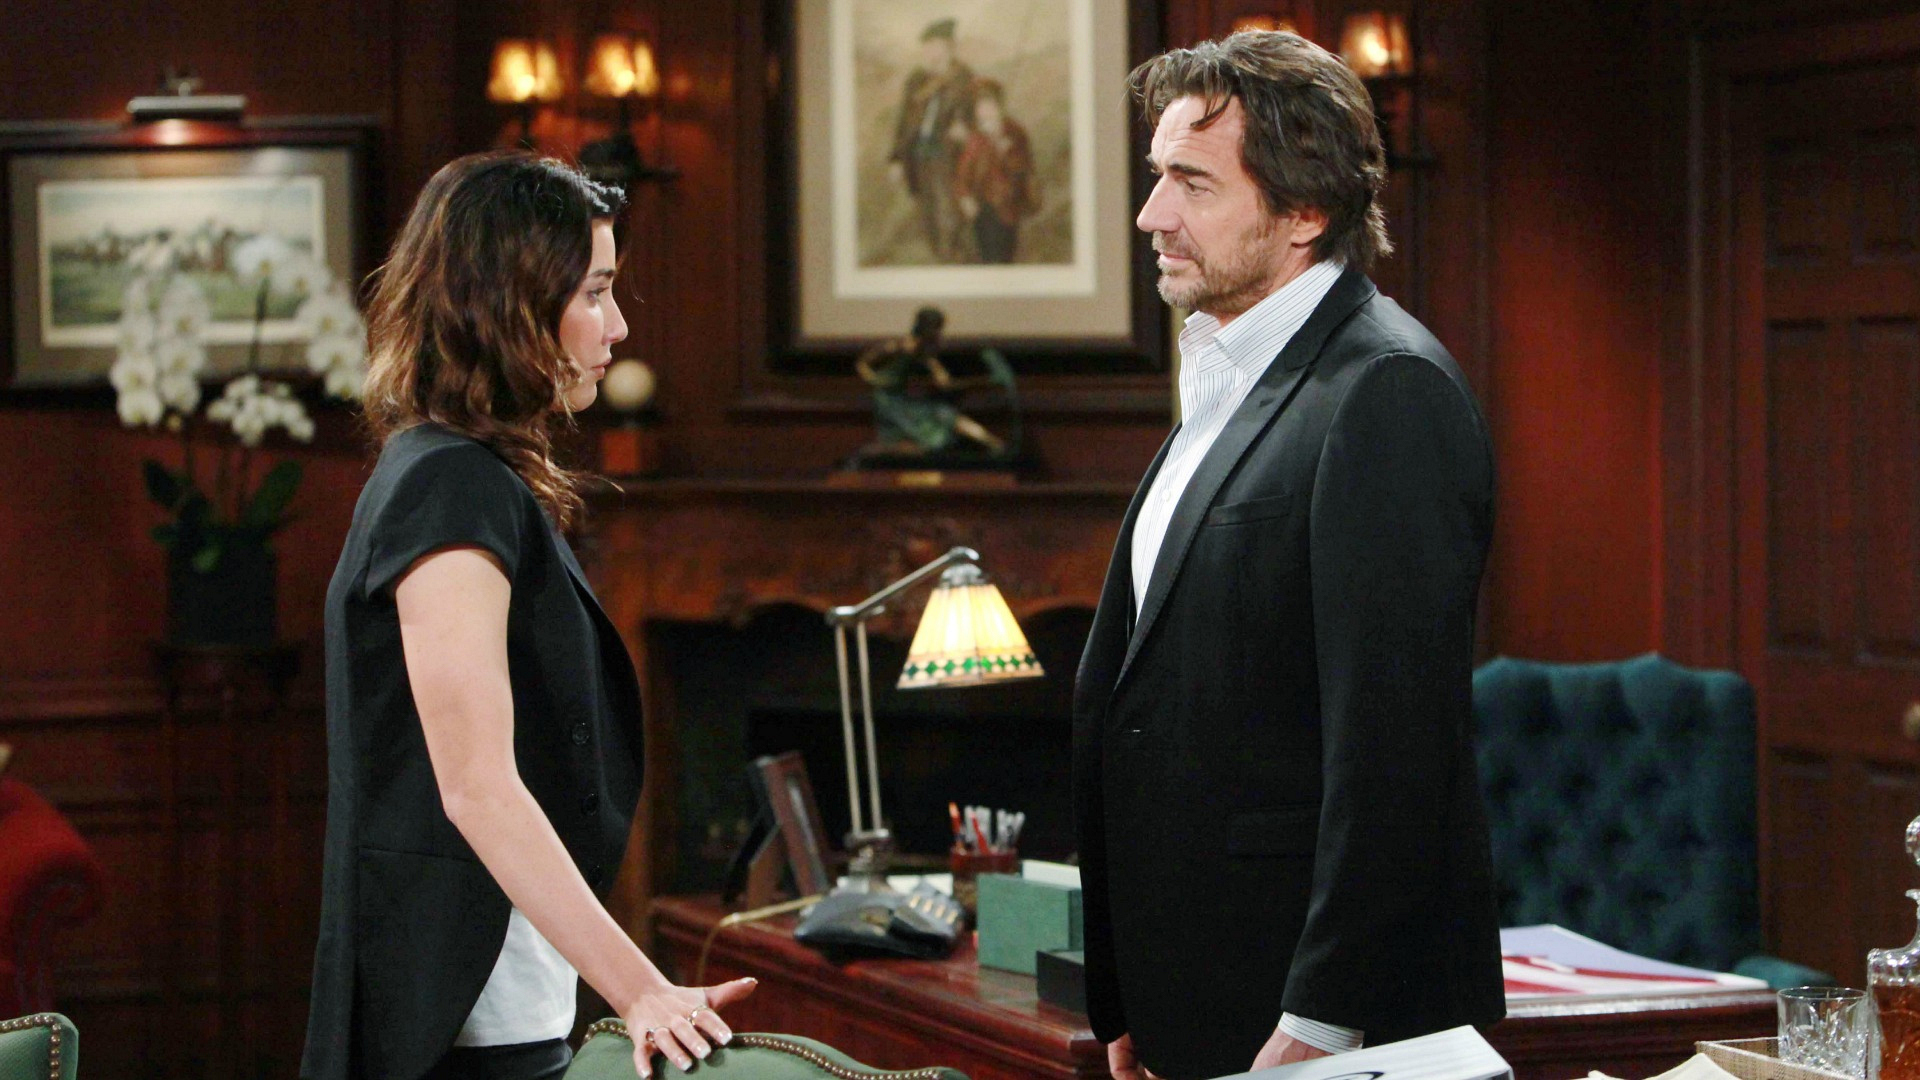 Steffy and Wyatt, separately, go to their fathers Ridge and Bill for advice about their current situation.